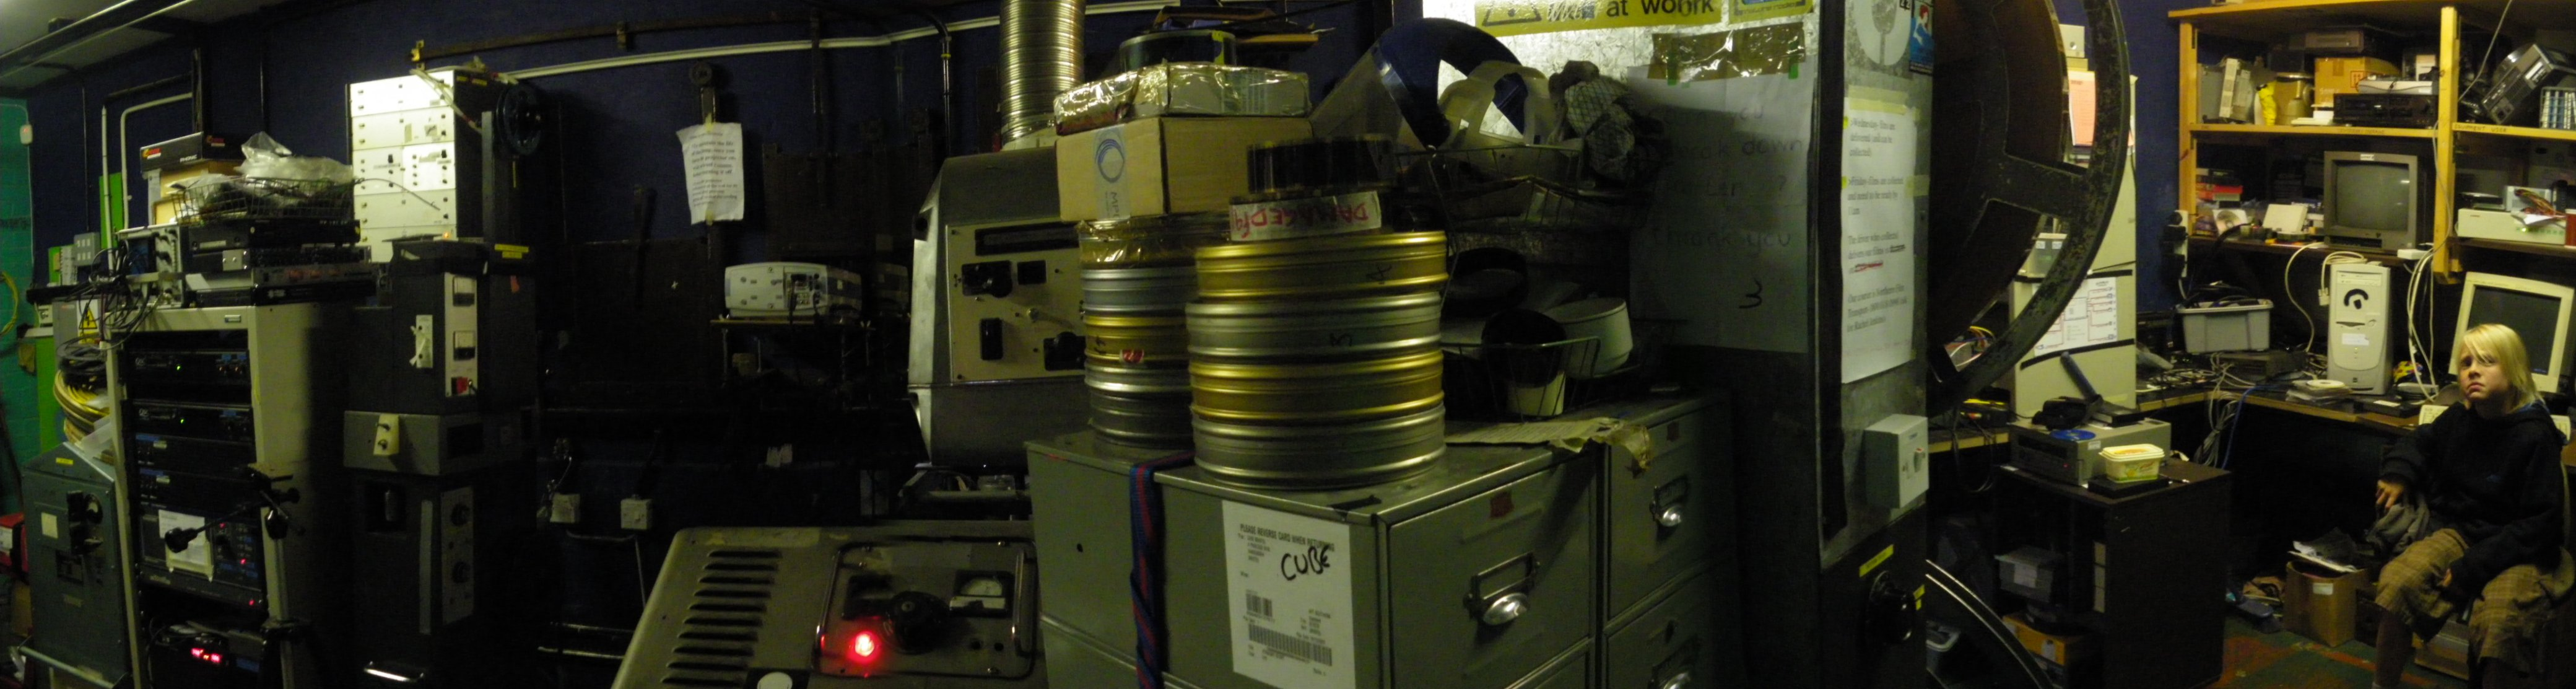 Projection room and Marvin